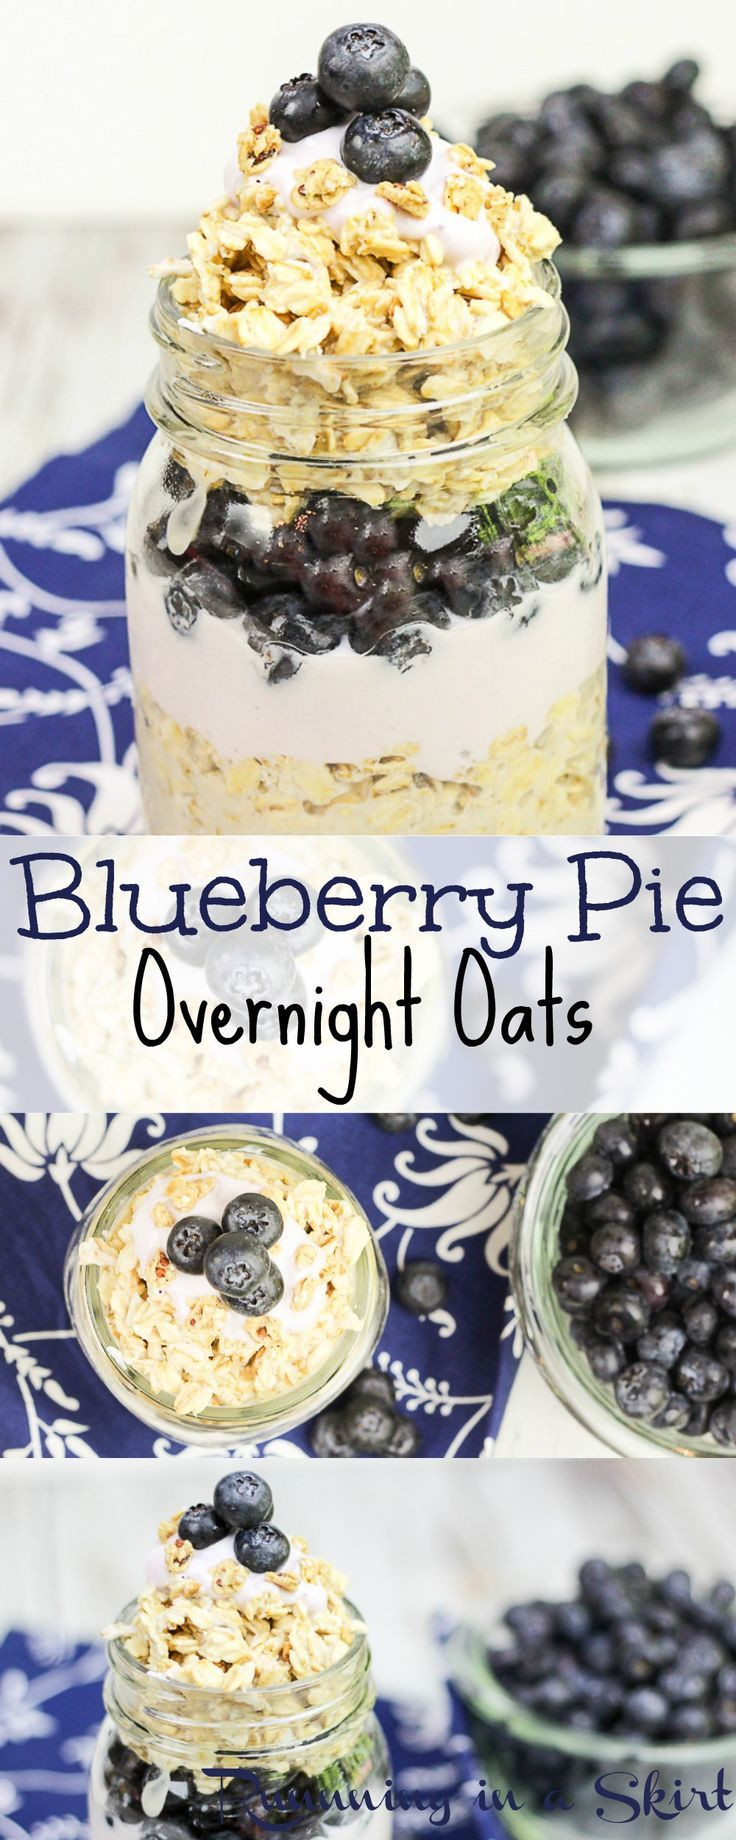 Healthy Blueberry Breakfast Recipes  Blueberry Pie Overnight Oats Recipe